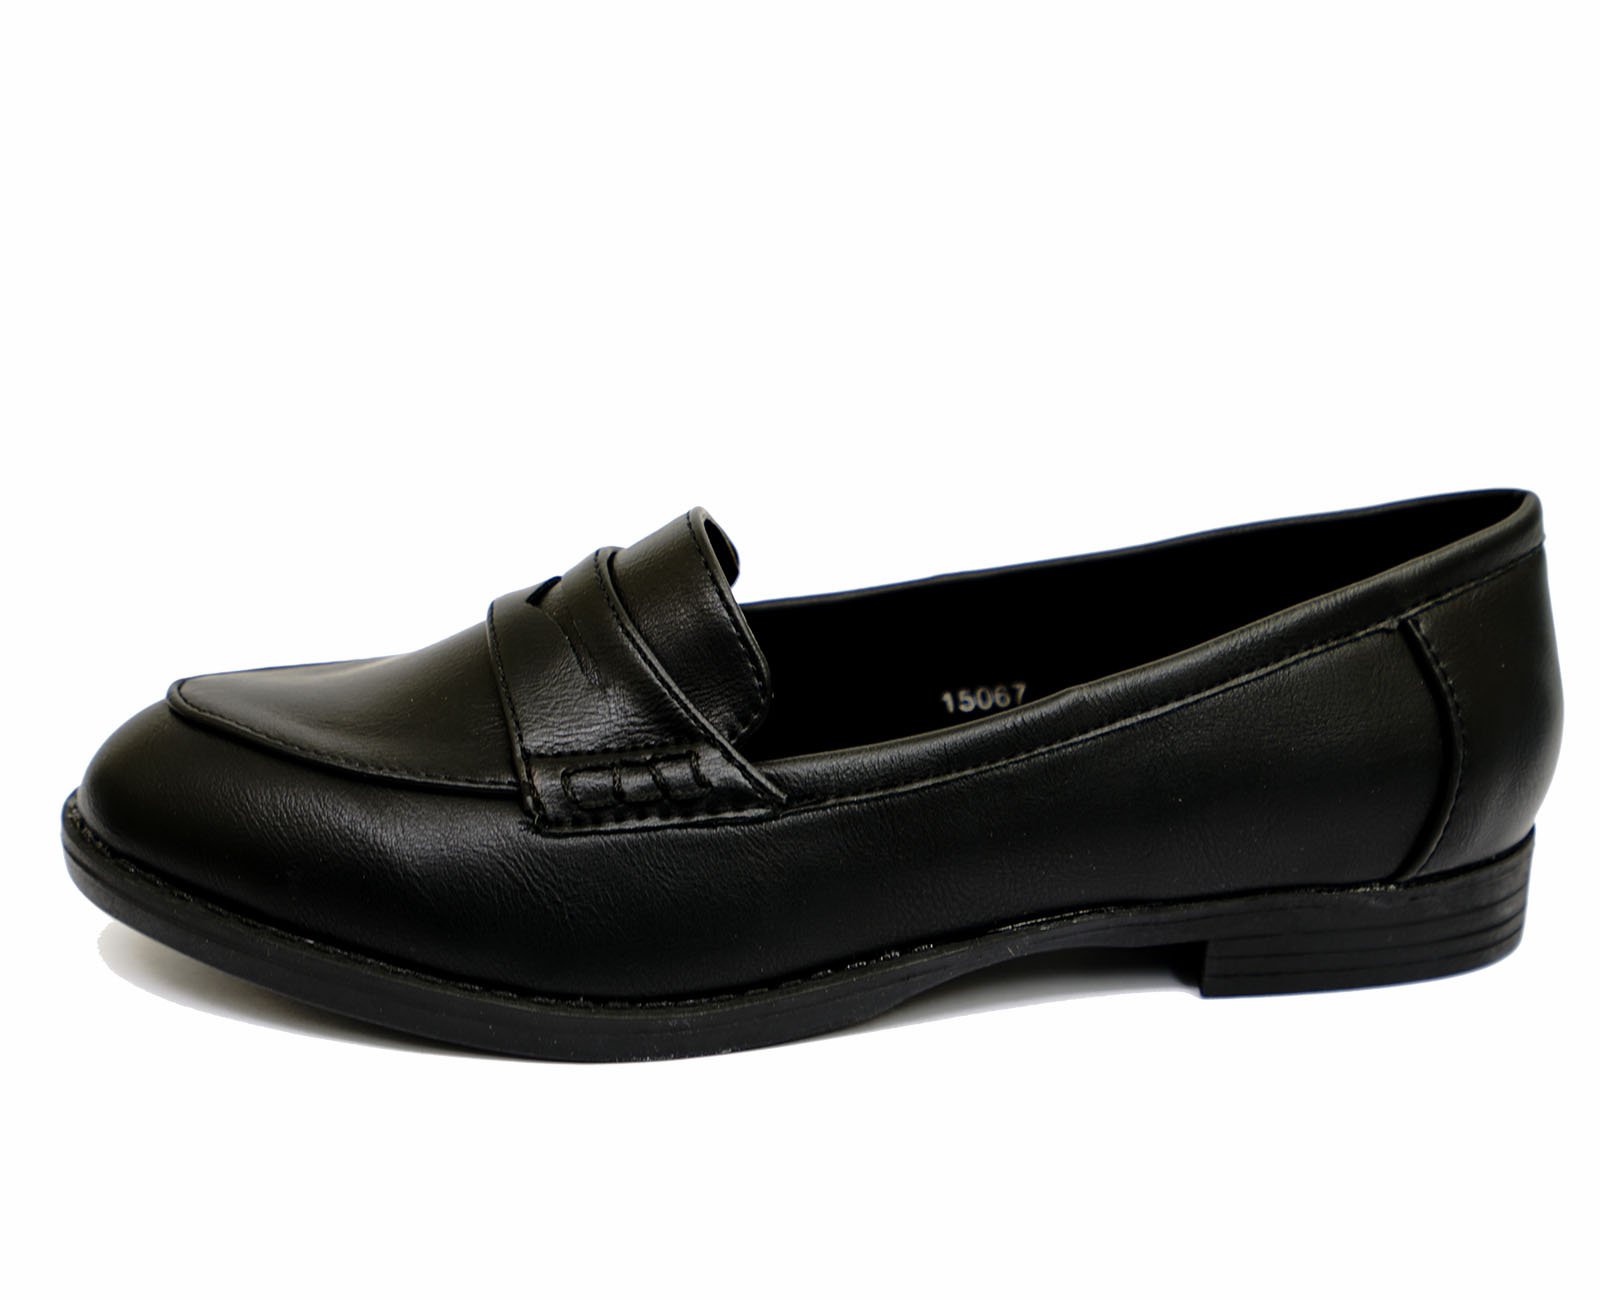 LADIES-BLACK-SLIP-ON-LOAFERS-MOCCASIN-CASUAL-SMART-WORK-COMFY-SCHOOL-SHOES-3-9 thumbnail 10